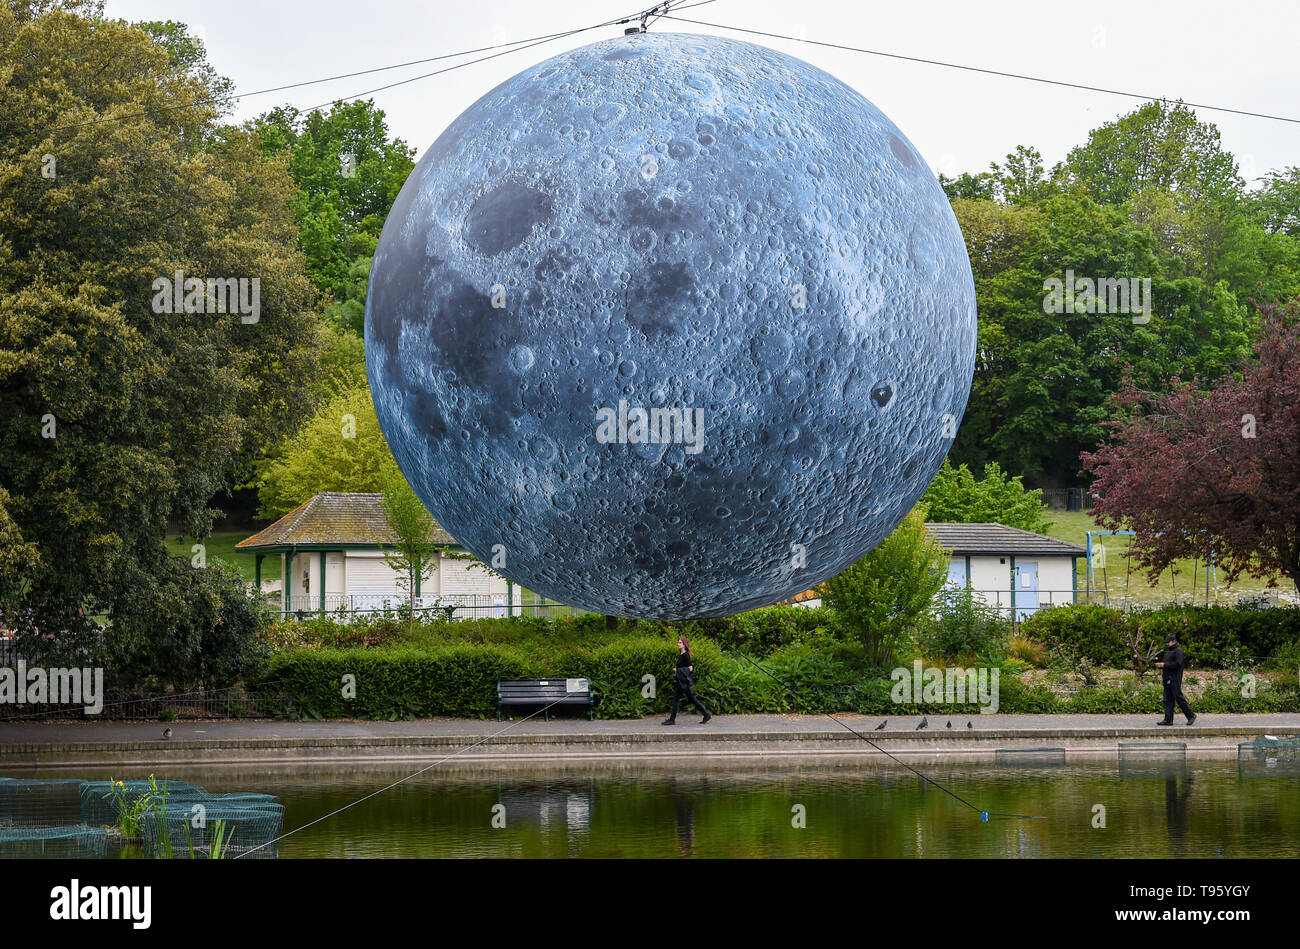 Brighton UK 30th April 2019 - A large model of the moon rises above Queens Park pond in Brighton this morning ready for tonights Brighton Festival event 'Museum of the Moon' by Luke Jerram . The moon will be lit up tonight and over the weekend accompanied by music by composer Dan Jones as it celebrates 50 years since the famous moon landing. Credit: Simon Dack / Alamy Live News Stock Photo